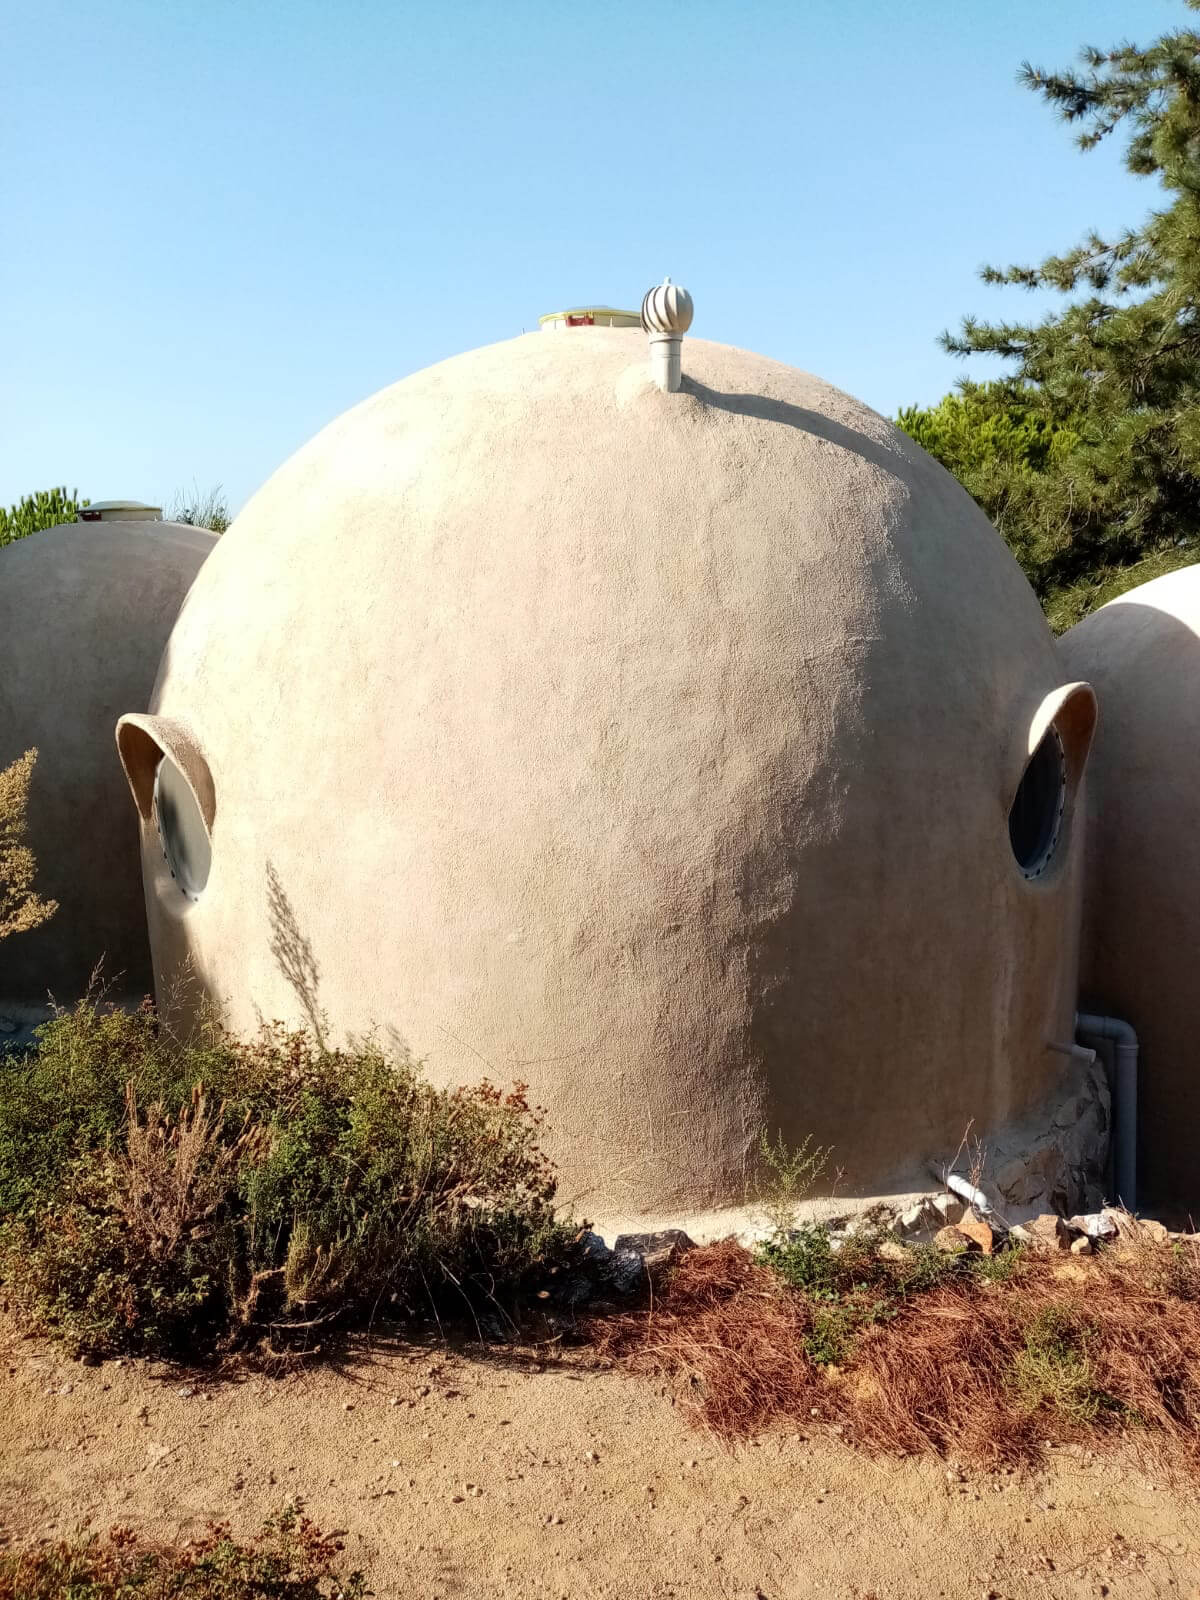 The shape of the dome seeks inspiration from natural forms | 44m<sup>2</sup> Low Impact Home | Matthew Prosser, Holistic Progression Designs | STIRworld